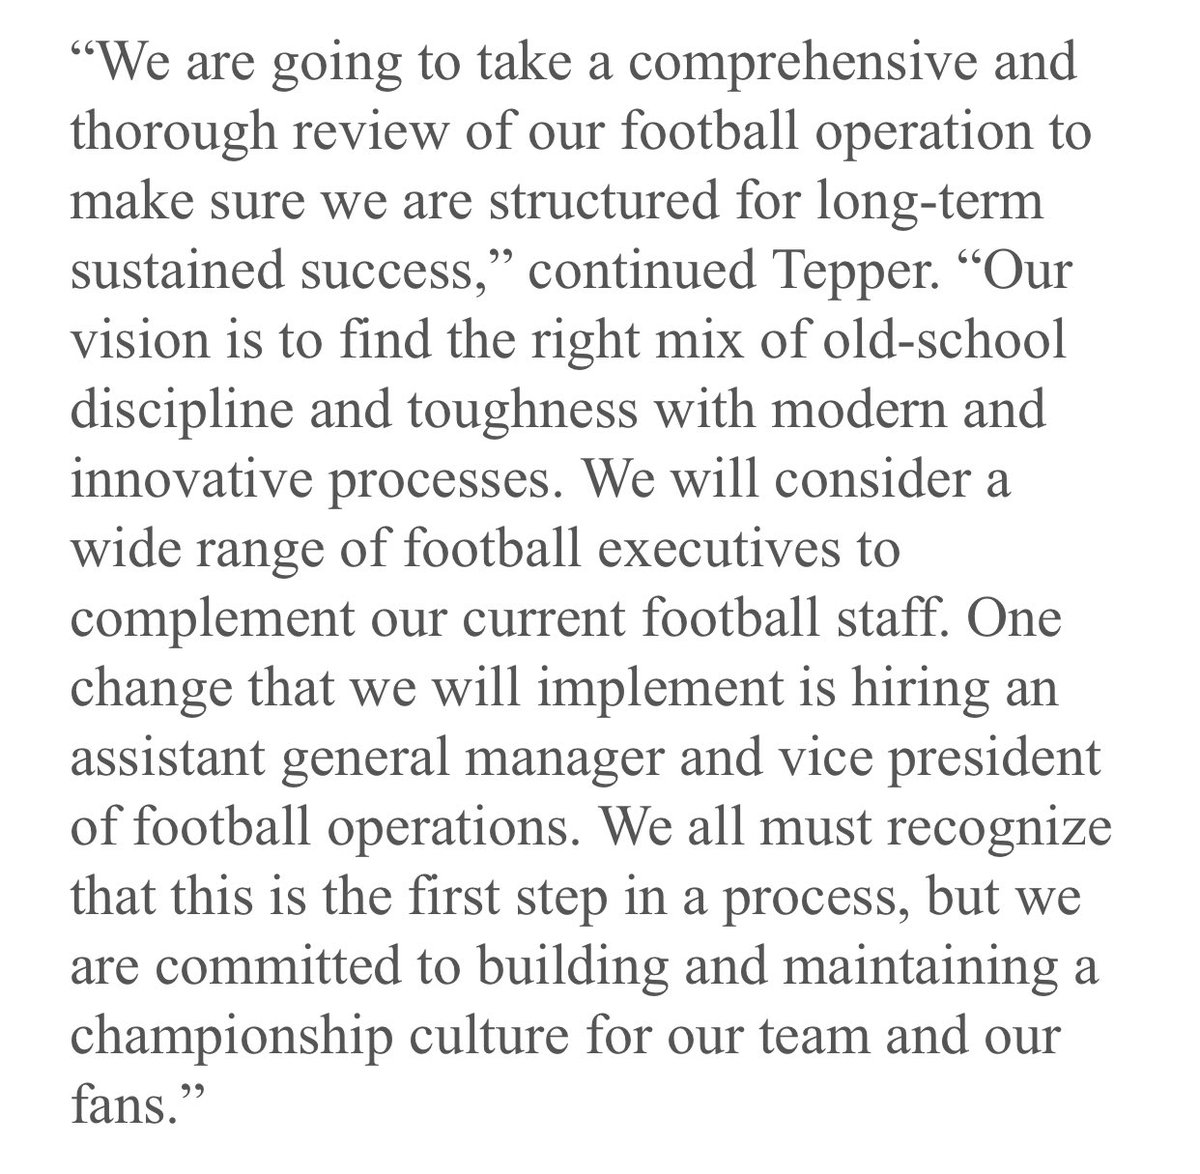 #Panthers owner David Tepper will do a thorough review of the football operations and add staff. At this point, nothing has changed for GM Marty Hurney.